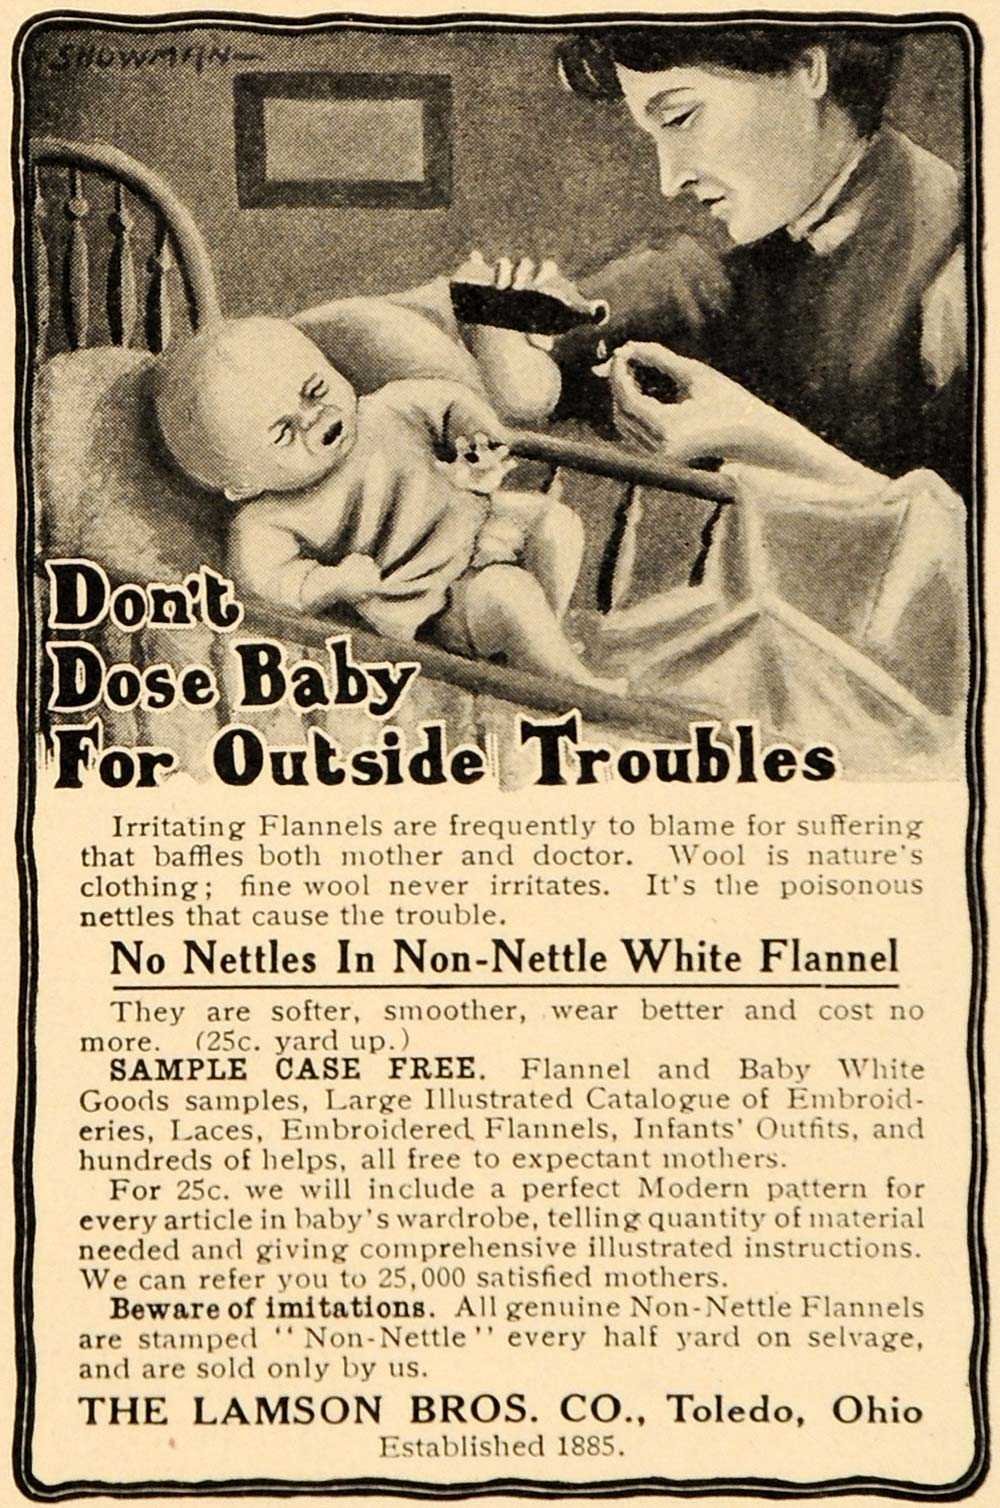 1909 Ad Wool Lamson Brothers Baby Non Nettle Flannel - ORIGINAL ADVERTISING OD3